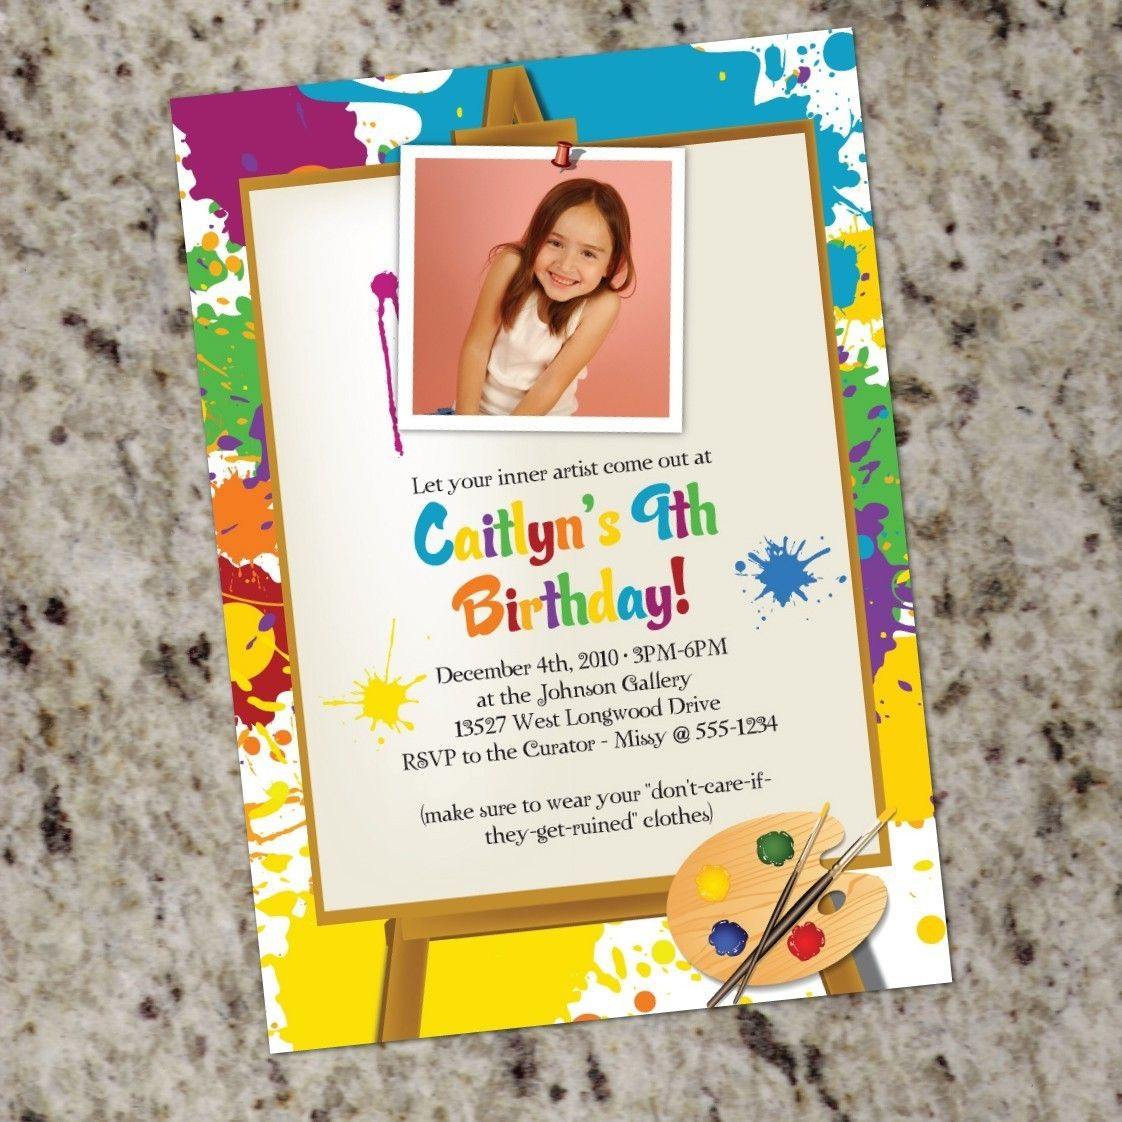 bday party invitation mail%0A Birthday Invitations   Attractive Art Party Invitation Design Ideas   Attractive White Art Party Invitation Design Idea With Colorful Paint  Motiveof Border